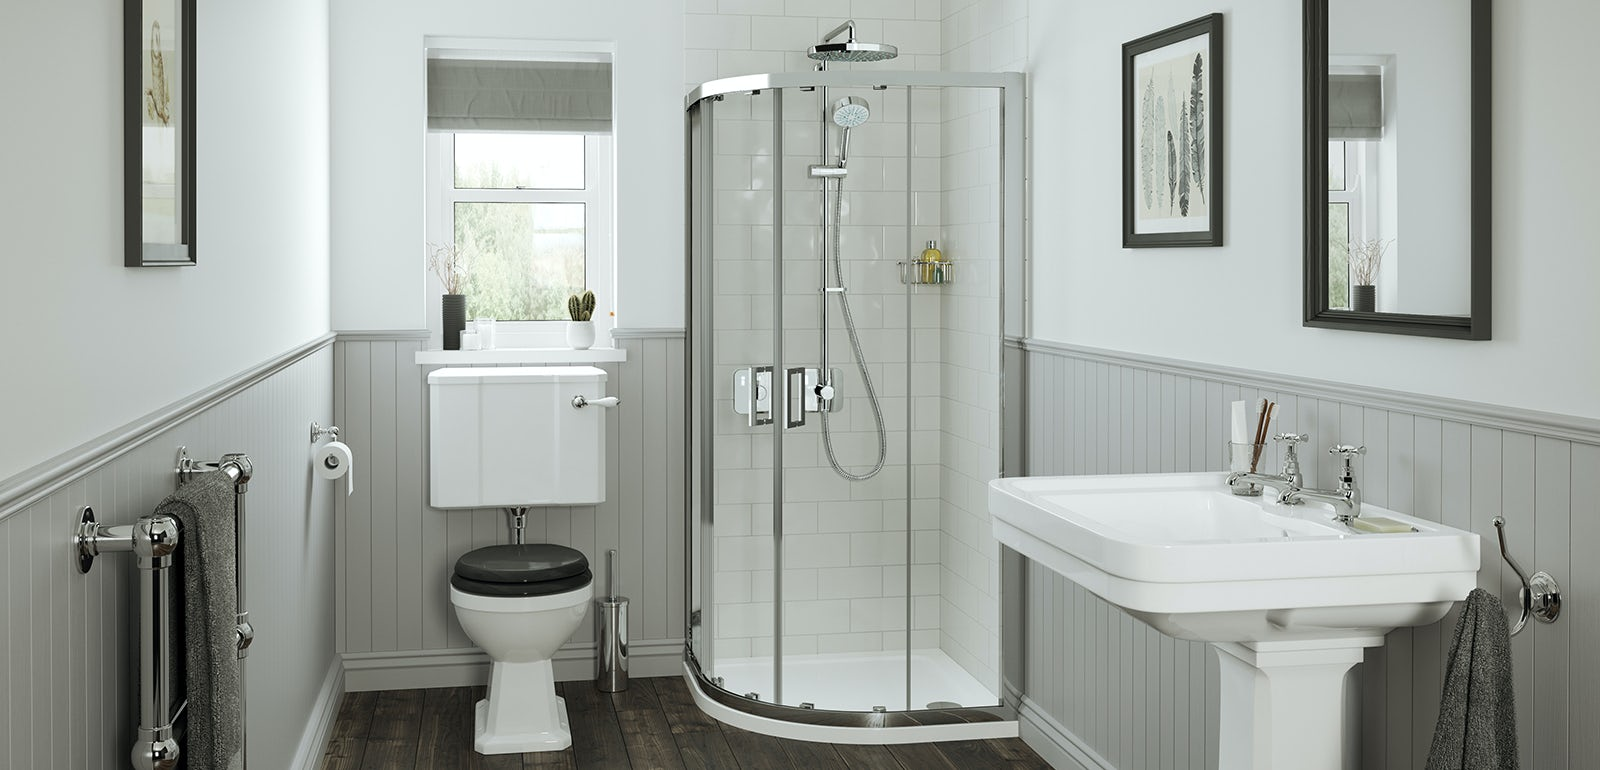 Small bathroom solutions from Mira Showers & Small bathroom solutions from Mira Showers | VictoriaPlum.com